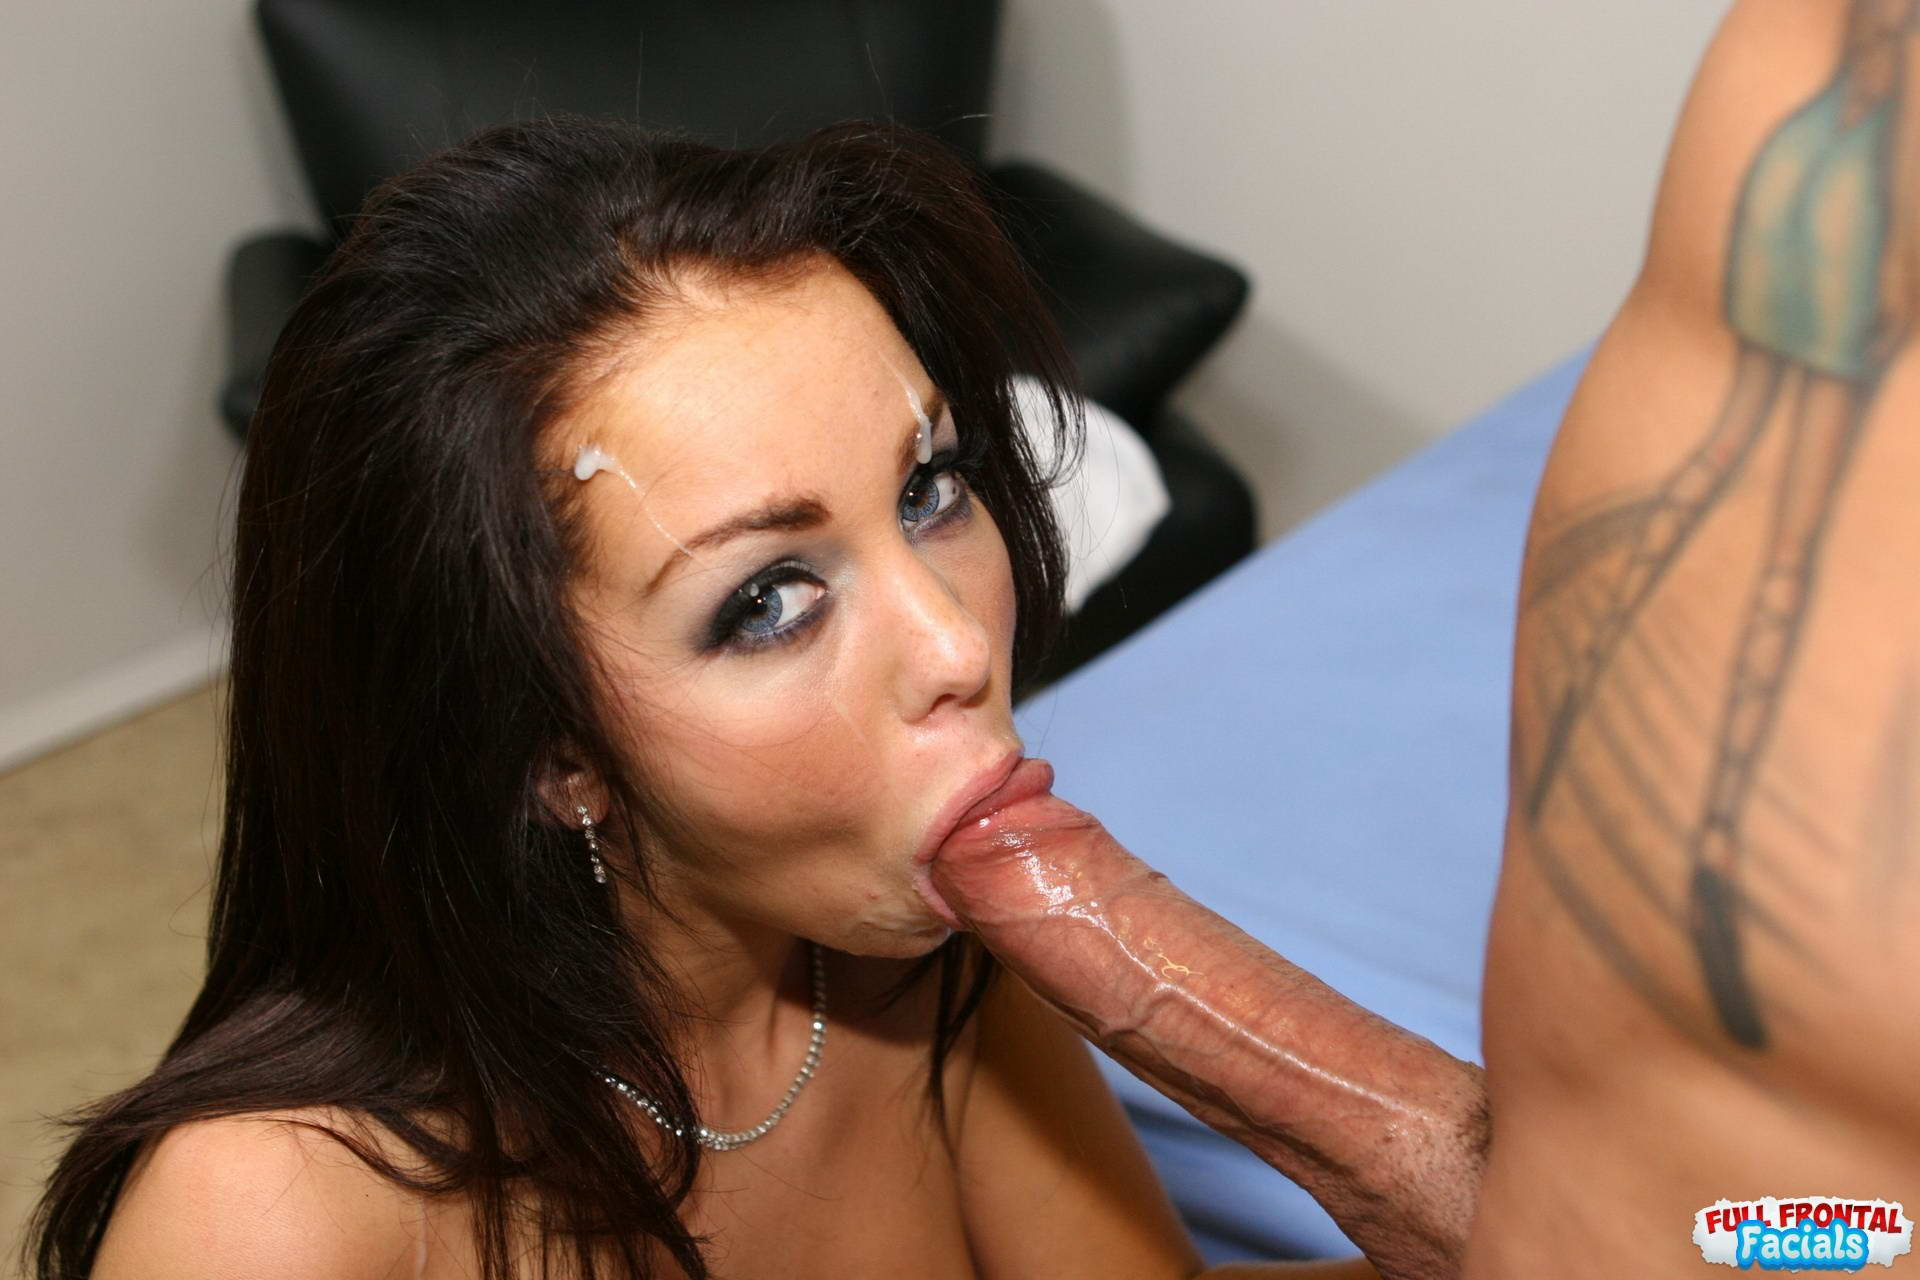 All internal hot creampie drips from kyra queens pussy 8